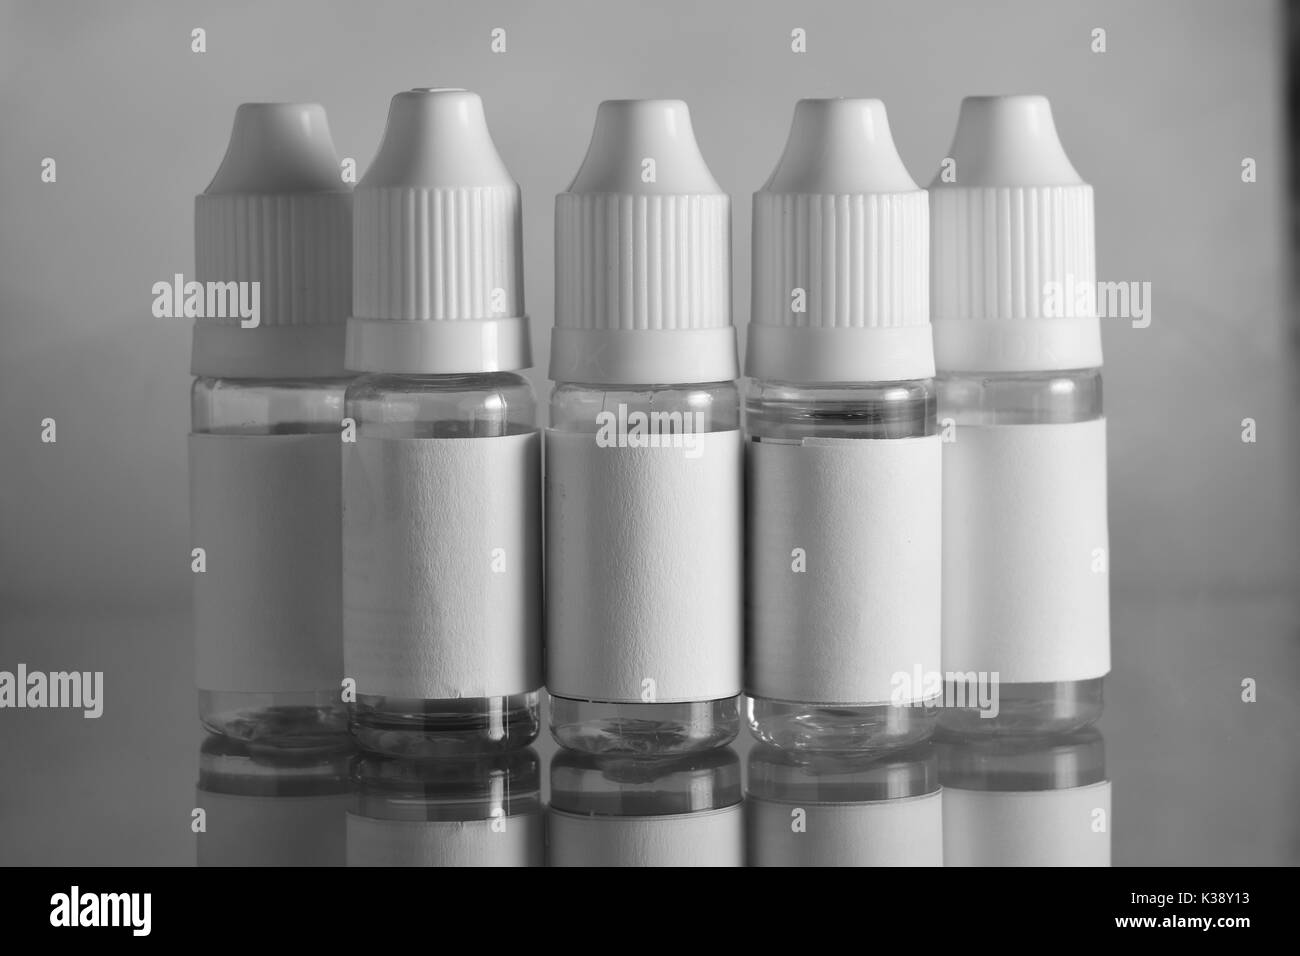 Isolated e liquid bottles for vaping devices, e cigarette, electronic cigarette, over a black background. - Stock Image